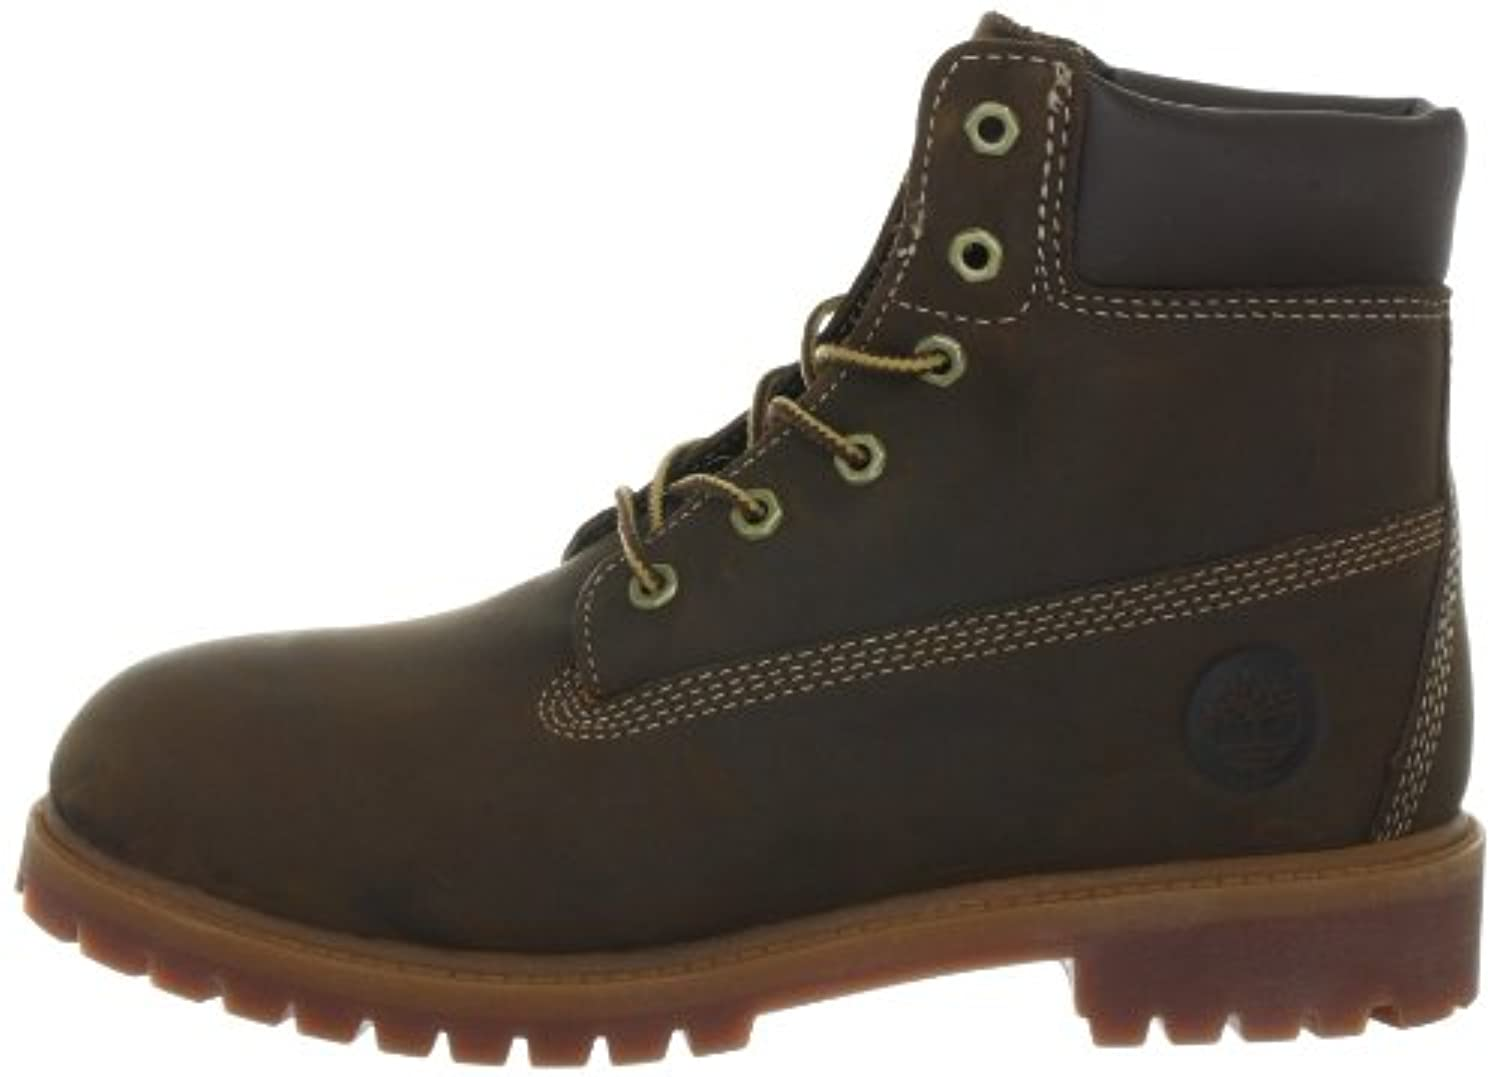 Timberland Authenic Waterproof, Boys' Boots, Brown, 7 UK Child